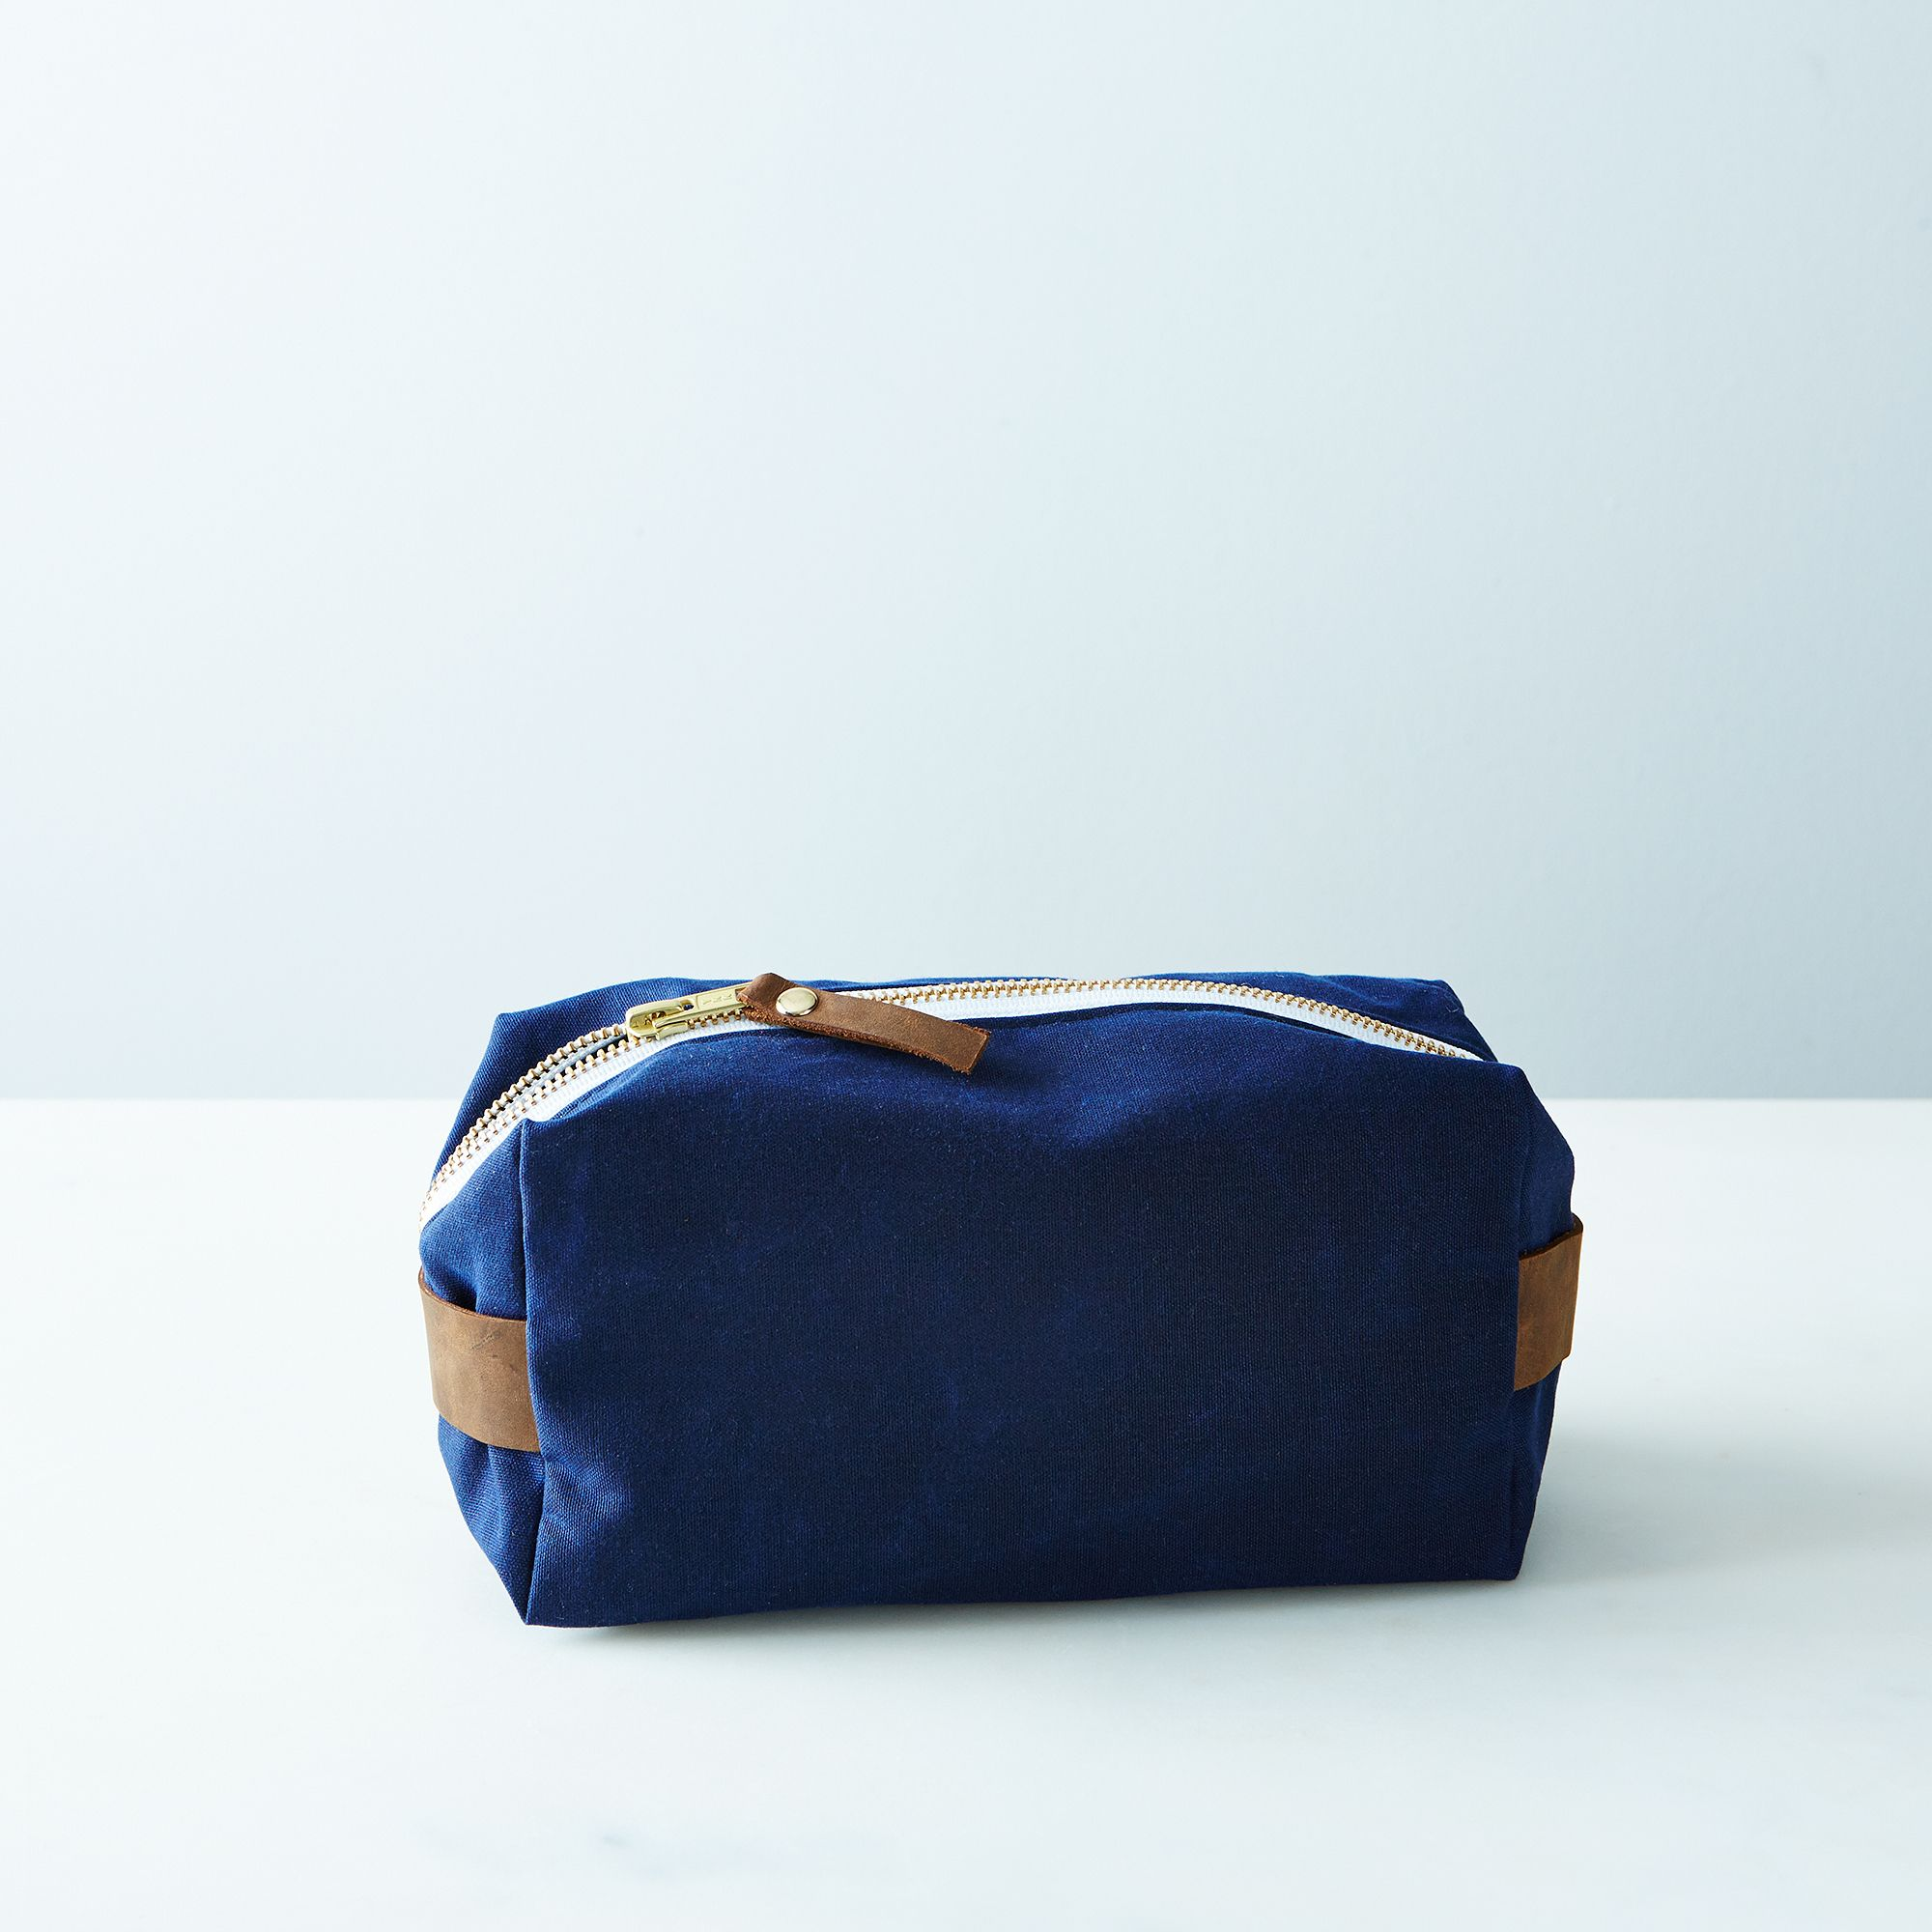 A643bfe6 a0f6 11e5 a190 0ef7535729df  butter design lab waxed canvas toiletries pouch weekender navy provisions mark weinberg 15 08 14 0935 silo